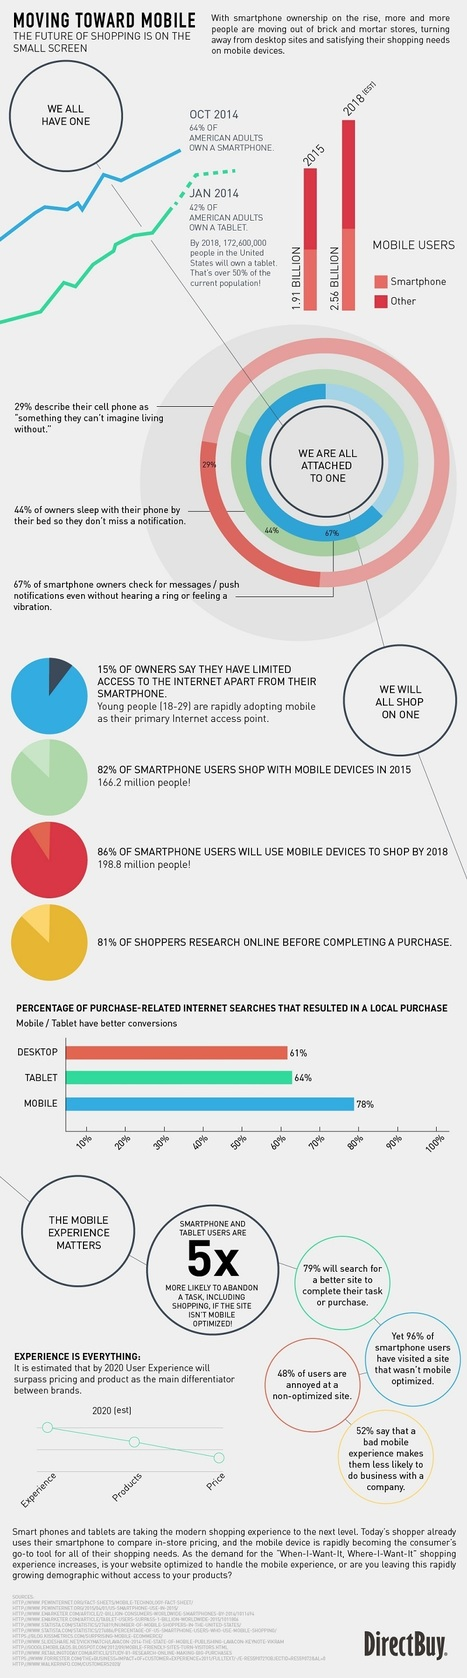 Moving Toward Mobile: The Future of Shopping Is on the Small Screen #Infographic | MarketingHits | Scoop.it